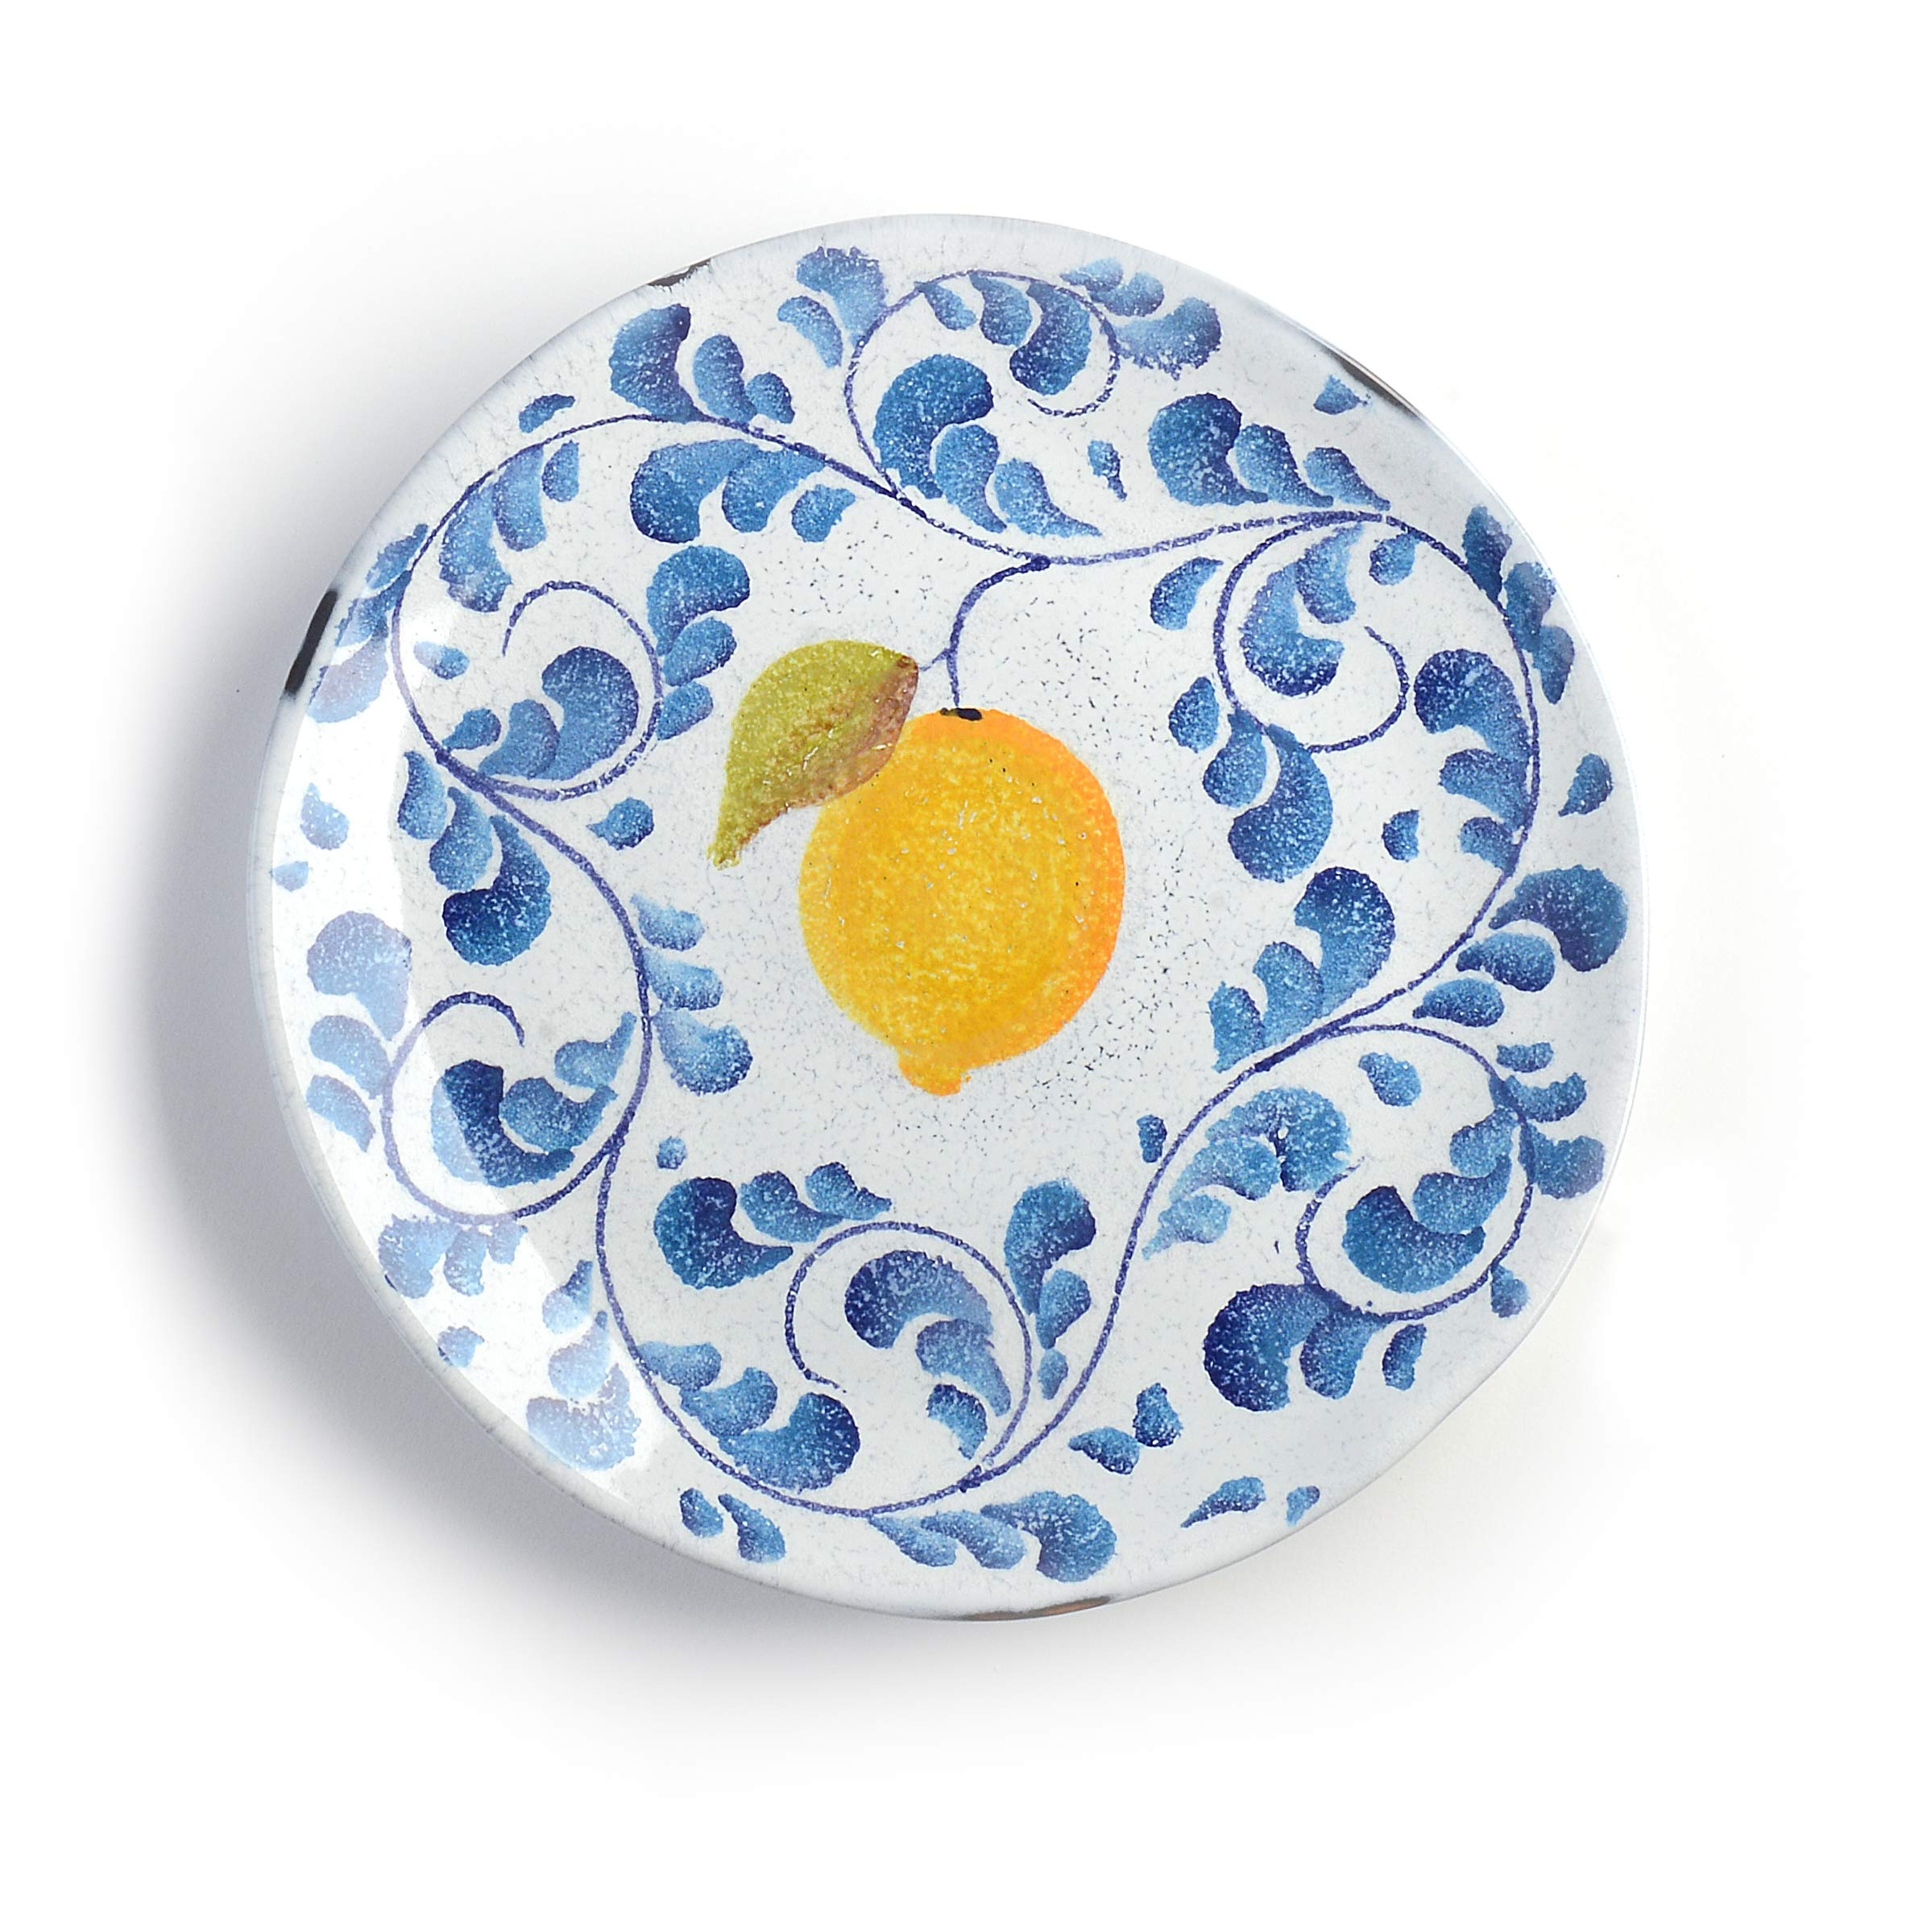 Italian Dinnerware - Handmade in Italy from our Amalfi Collection - Salad Plate